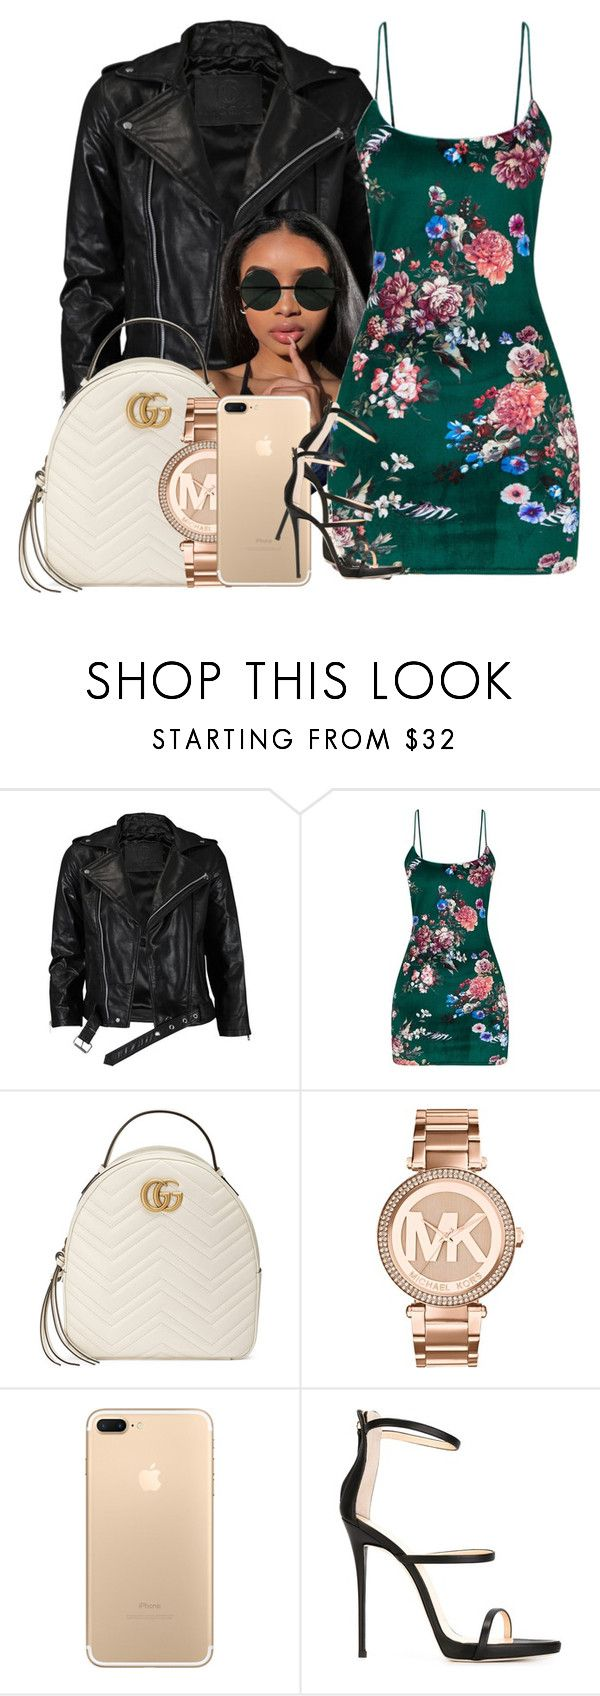 """""""173"""" by jalay ❤ liked on Polyvore featuring VIPARO, Gucci, Michael Kors and Giuseppe Zanotti"""